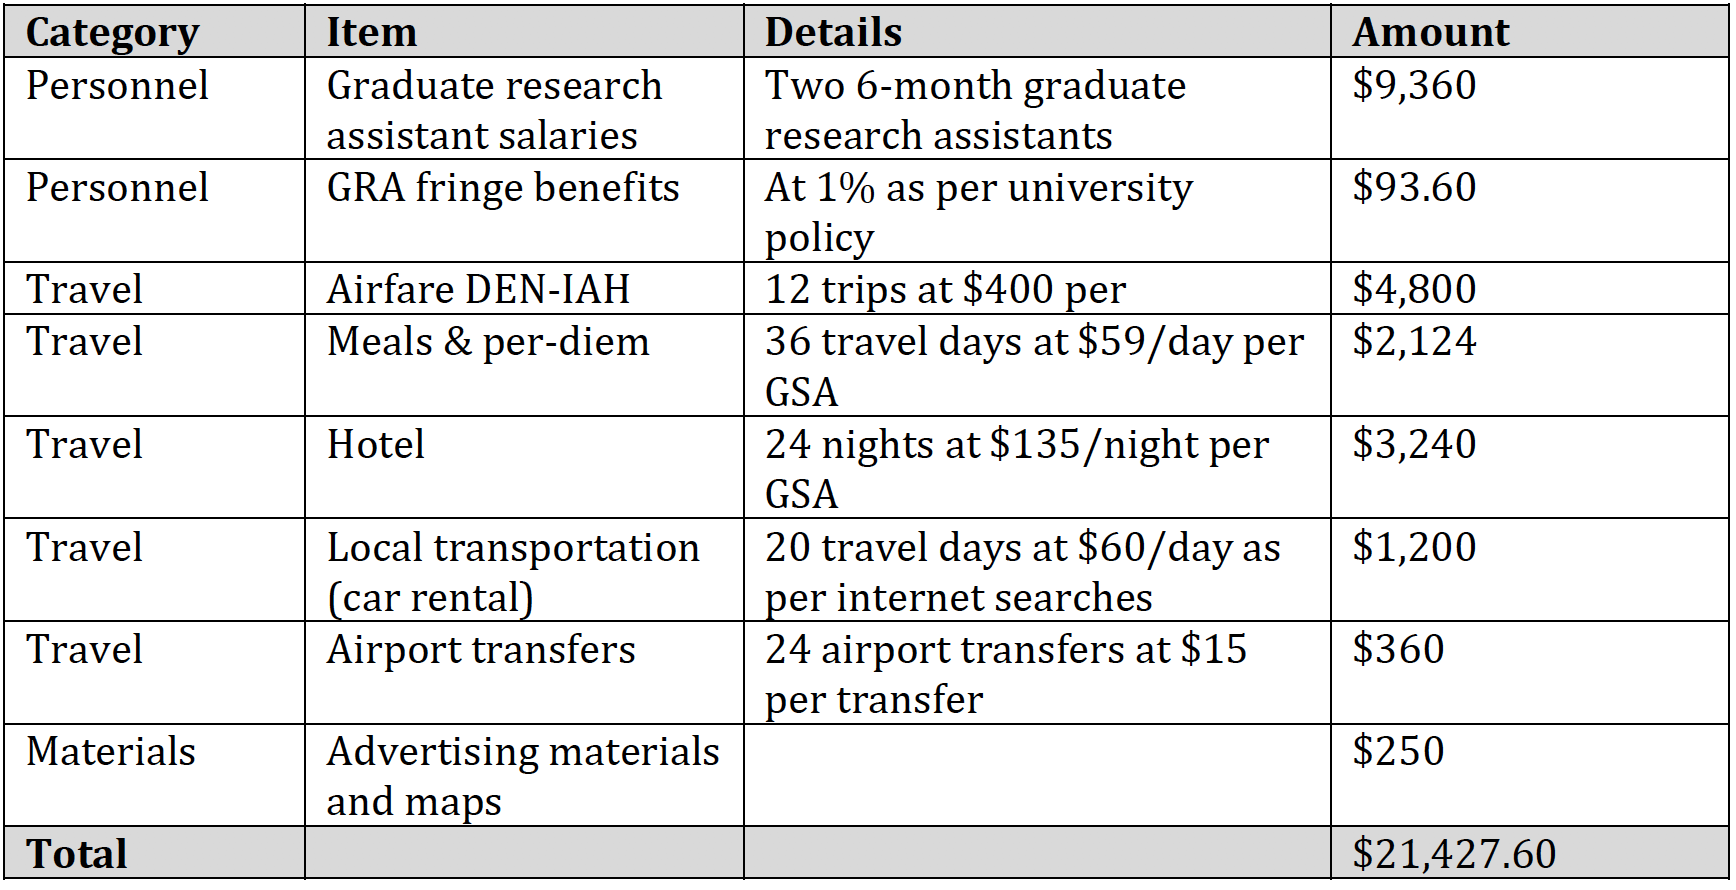 Figure 1: Internal grant budget